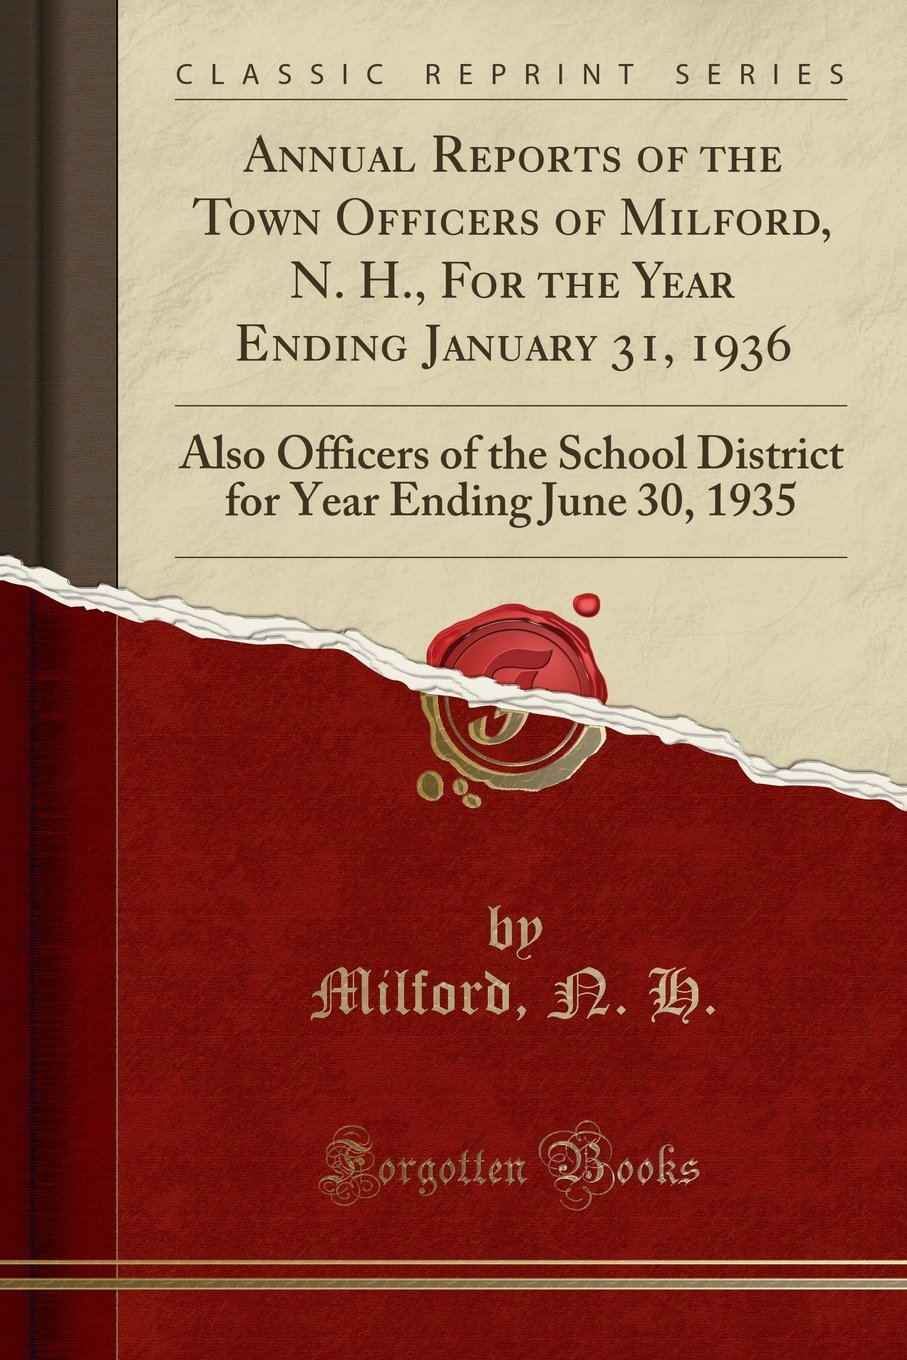 Download Annual Reports of the Town Officers of Milford, N. H., For the Year Ending January 31, 1936: Also Officers of the School District for Year Ending June 30, 1935 (Classic Reprint) pdf epub